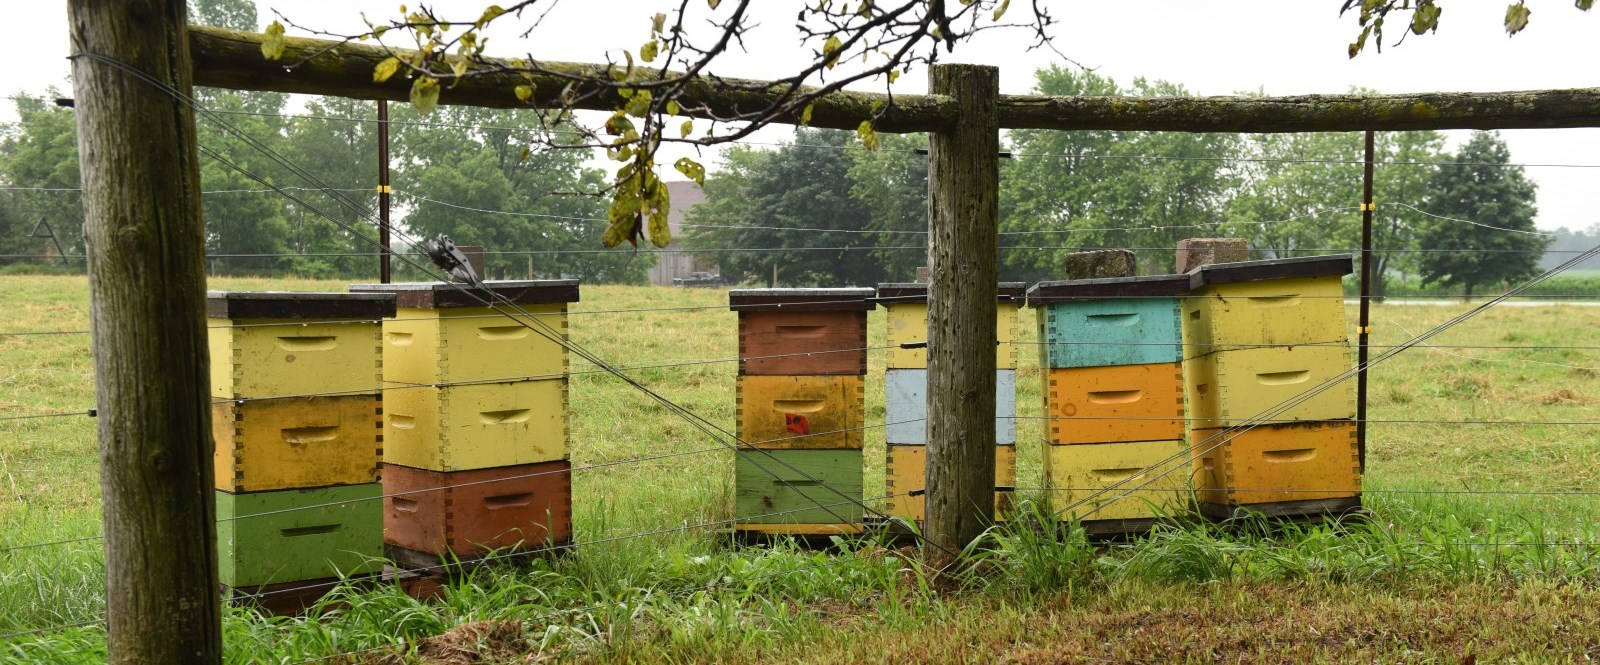 stacks of bee hive boxes in a field